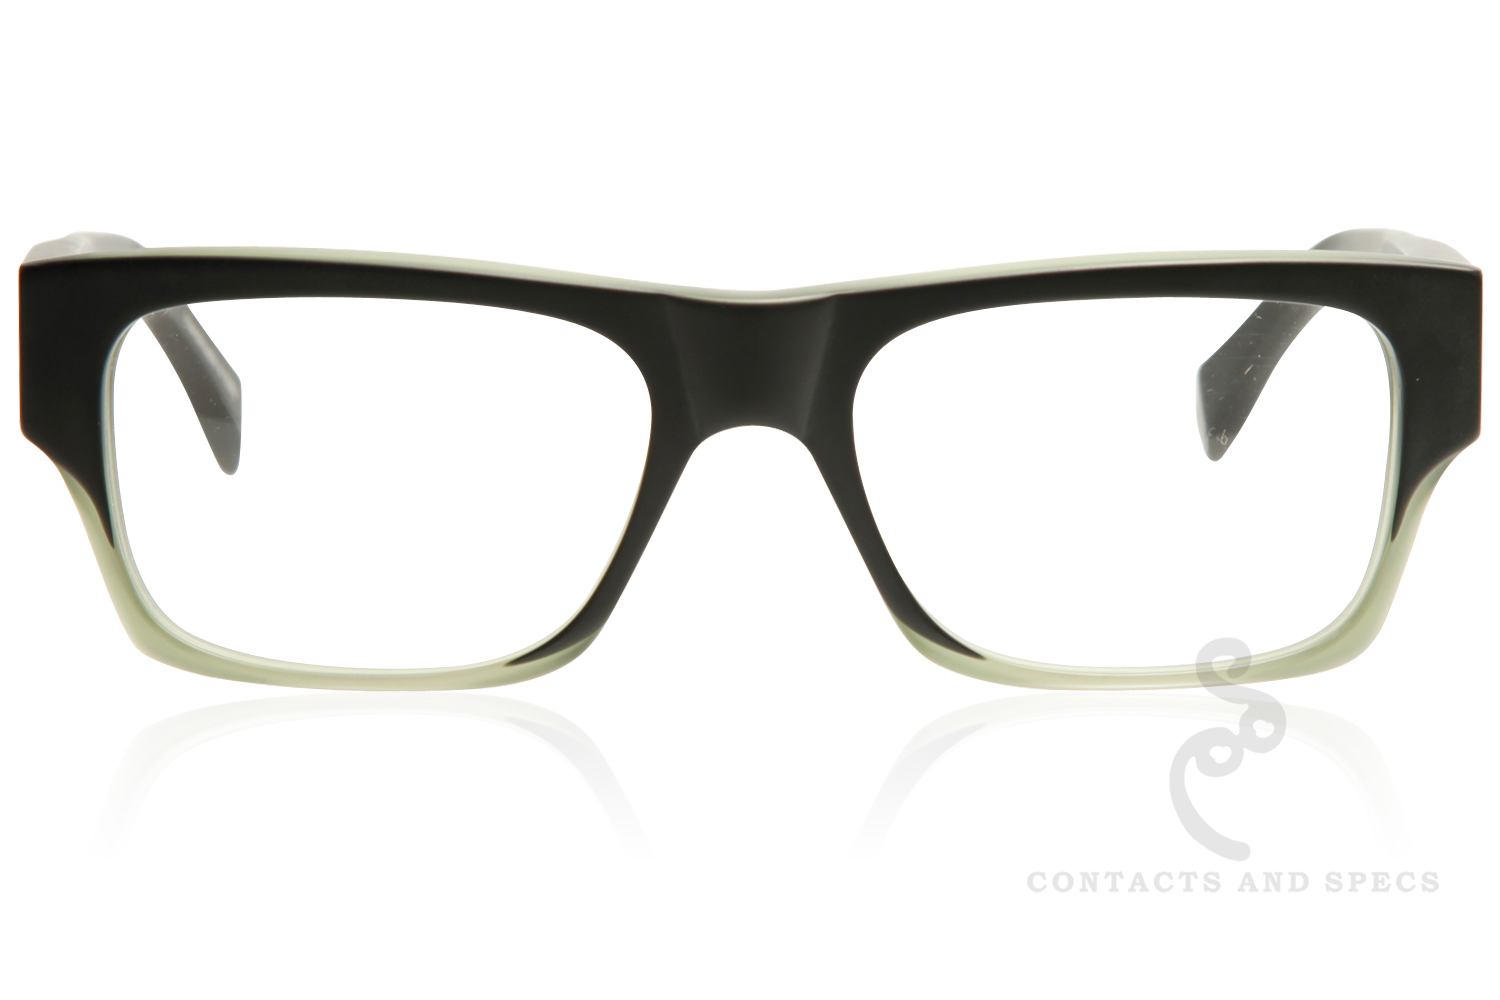 Claire Goldsmith Eyewear Lomax